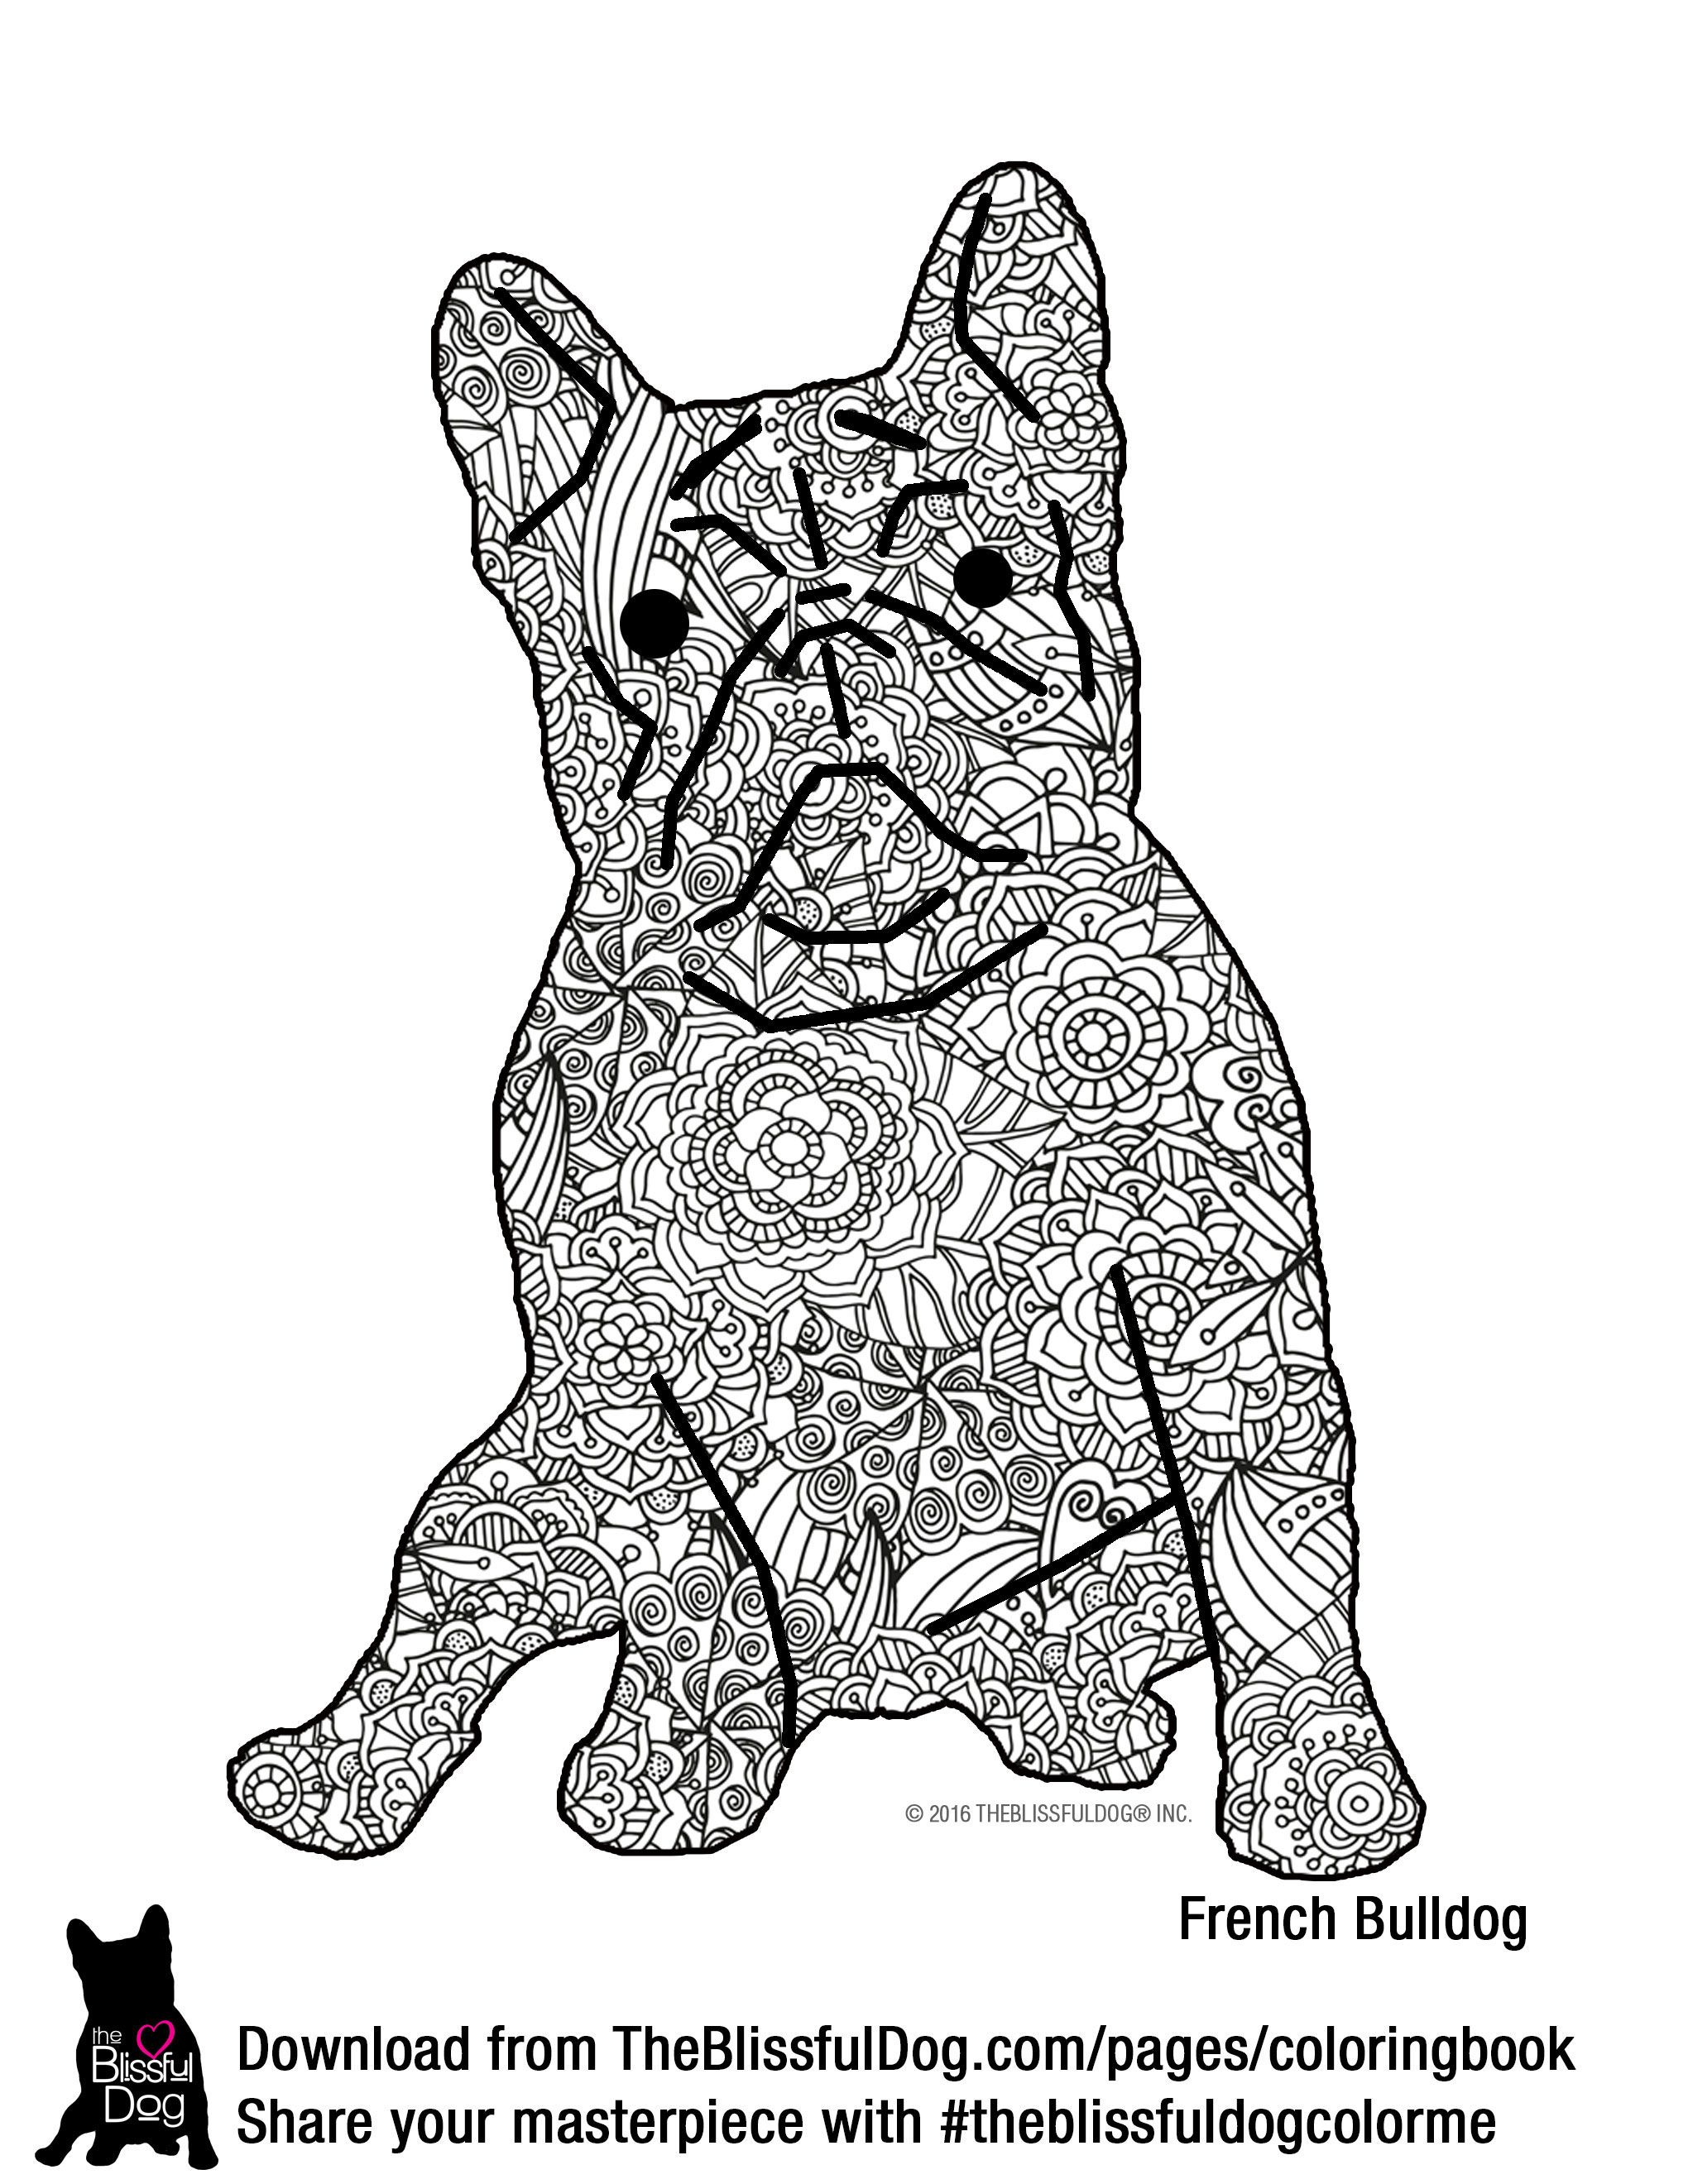 The Blissful Dog French Bulldog Coloring Page Big File So It Will Print On Us Letter Size Paper Send Dog Coloring Book Puppy Coloring Pages Dog Coloring Page